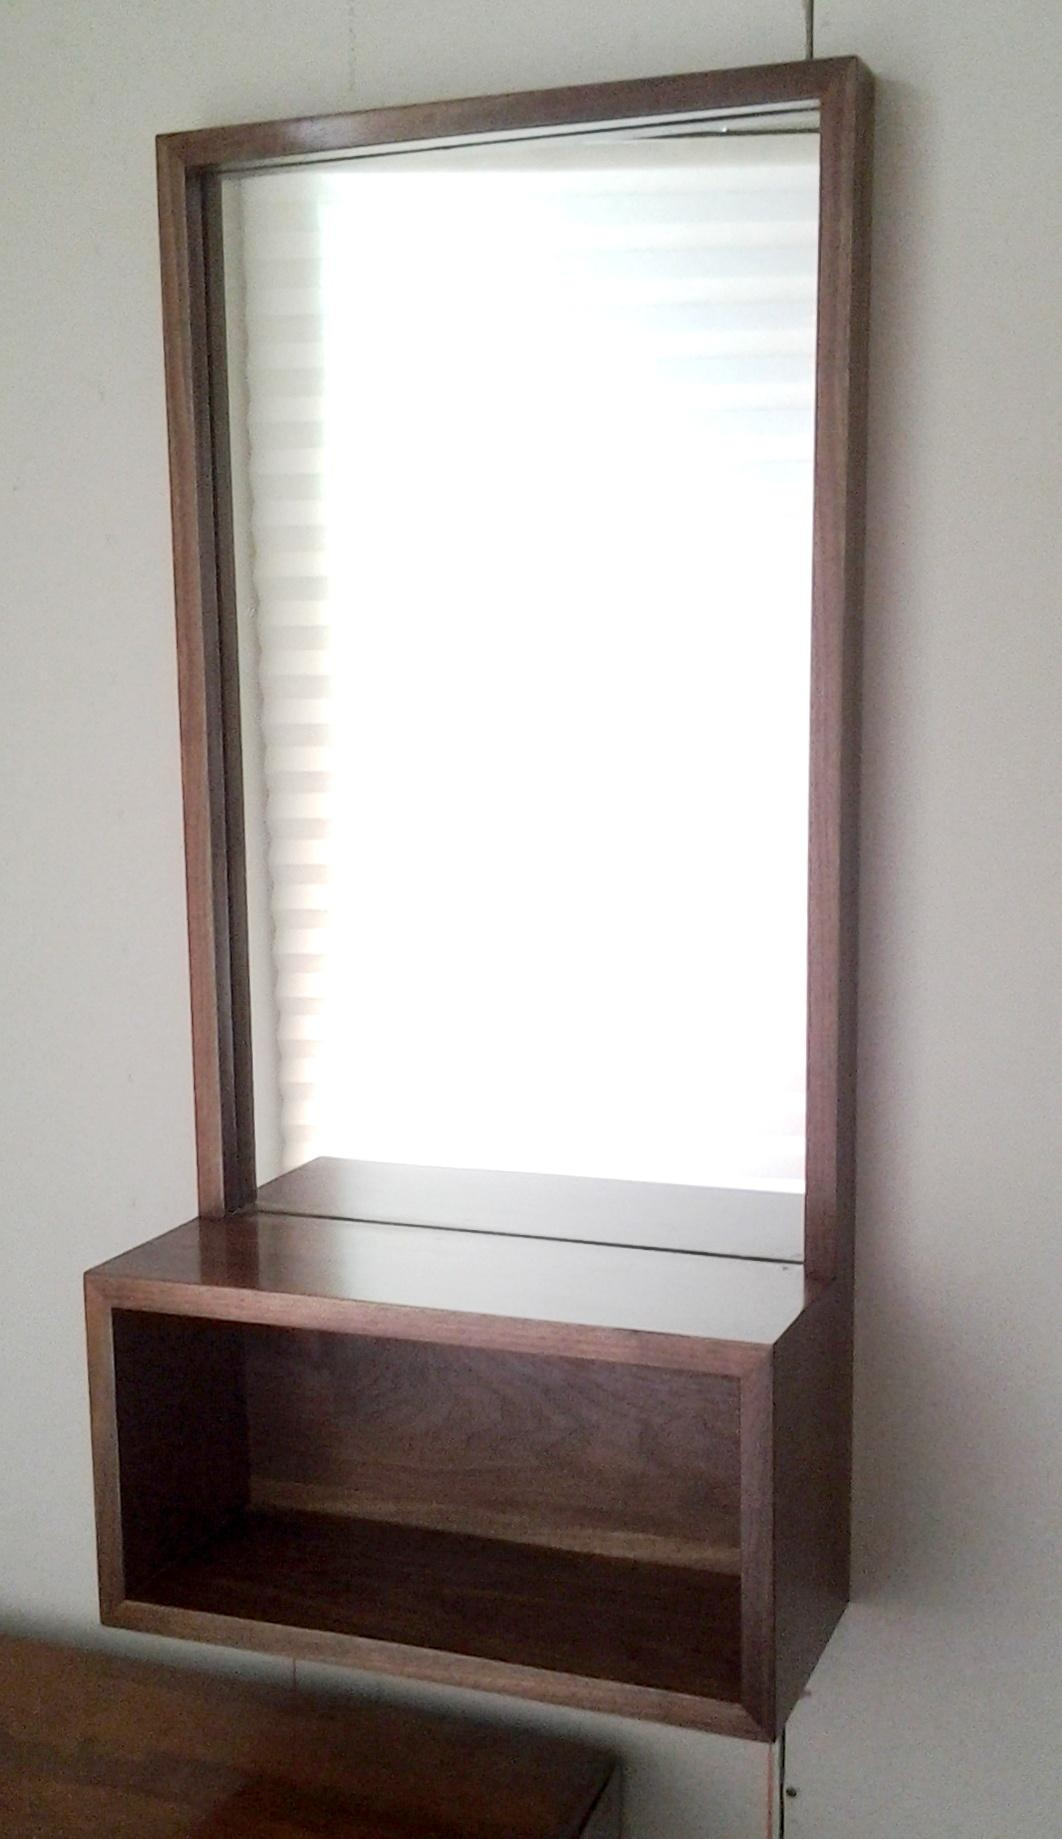 Walnut Entry Hall Mirror With Shelf | Intended For Modern Hall Mirrors (Image 20 of 20)